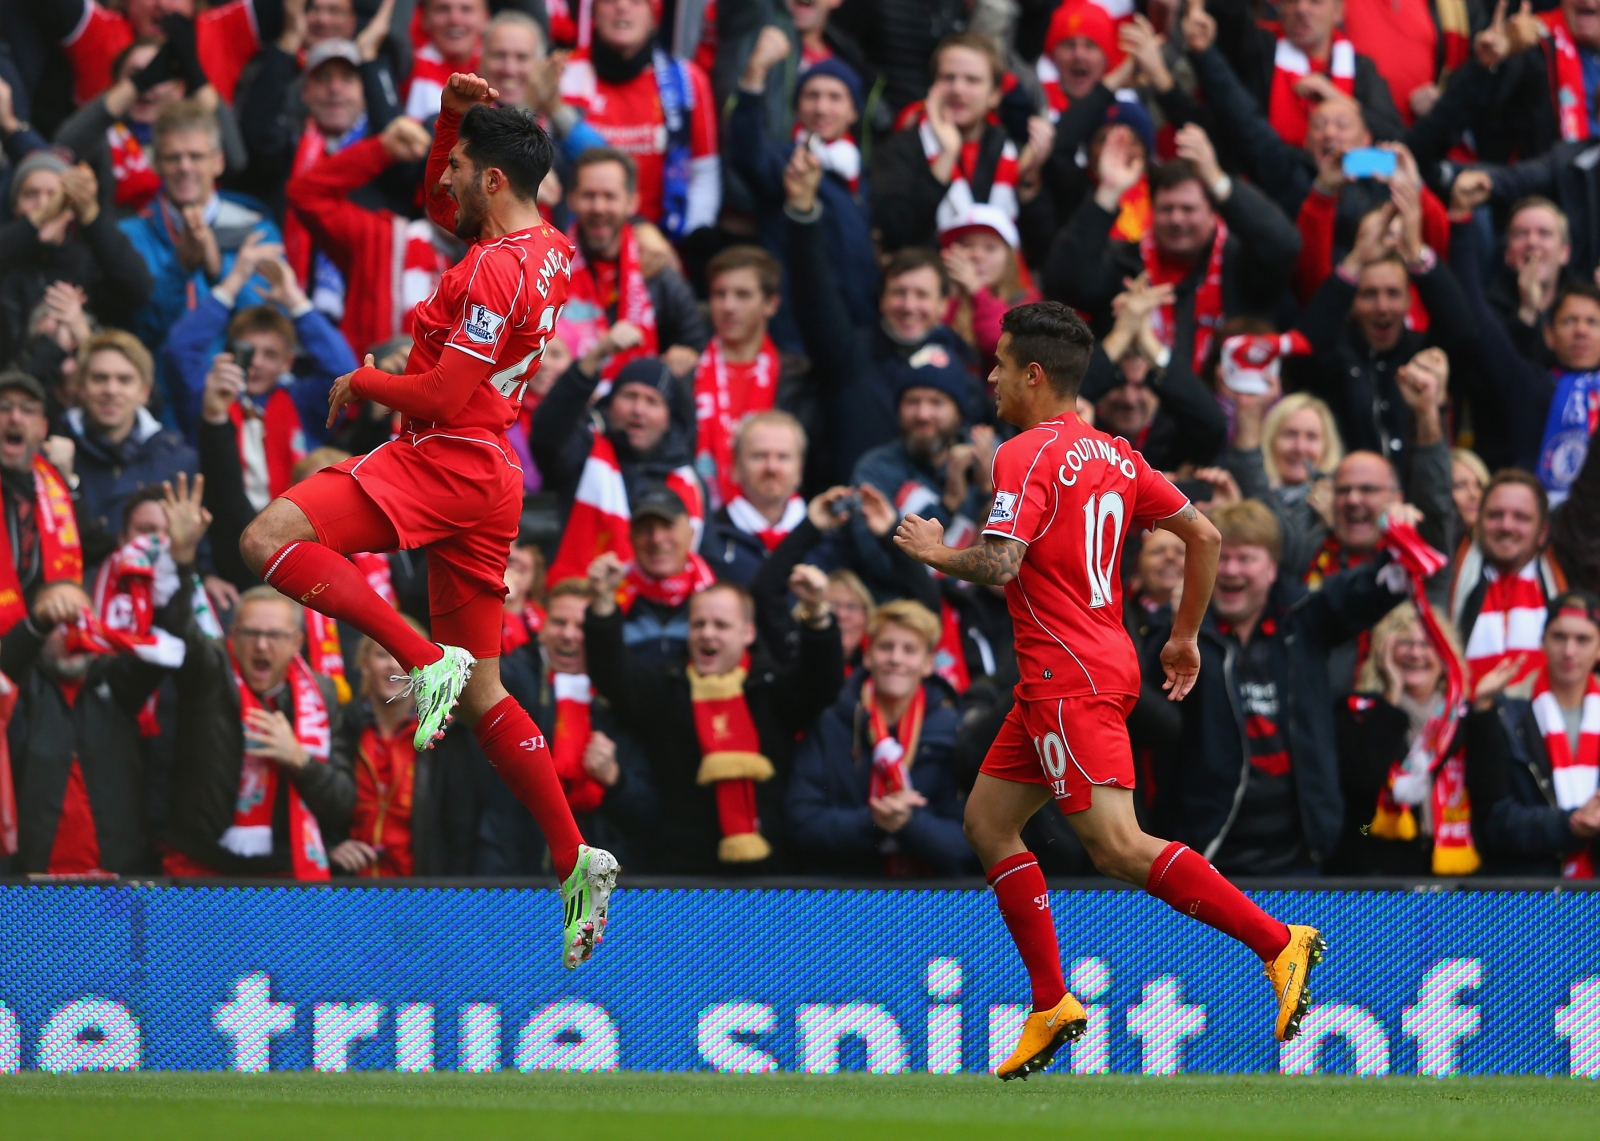 Philippe Coutinho and Emre Can